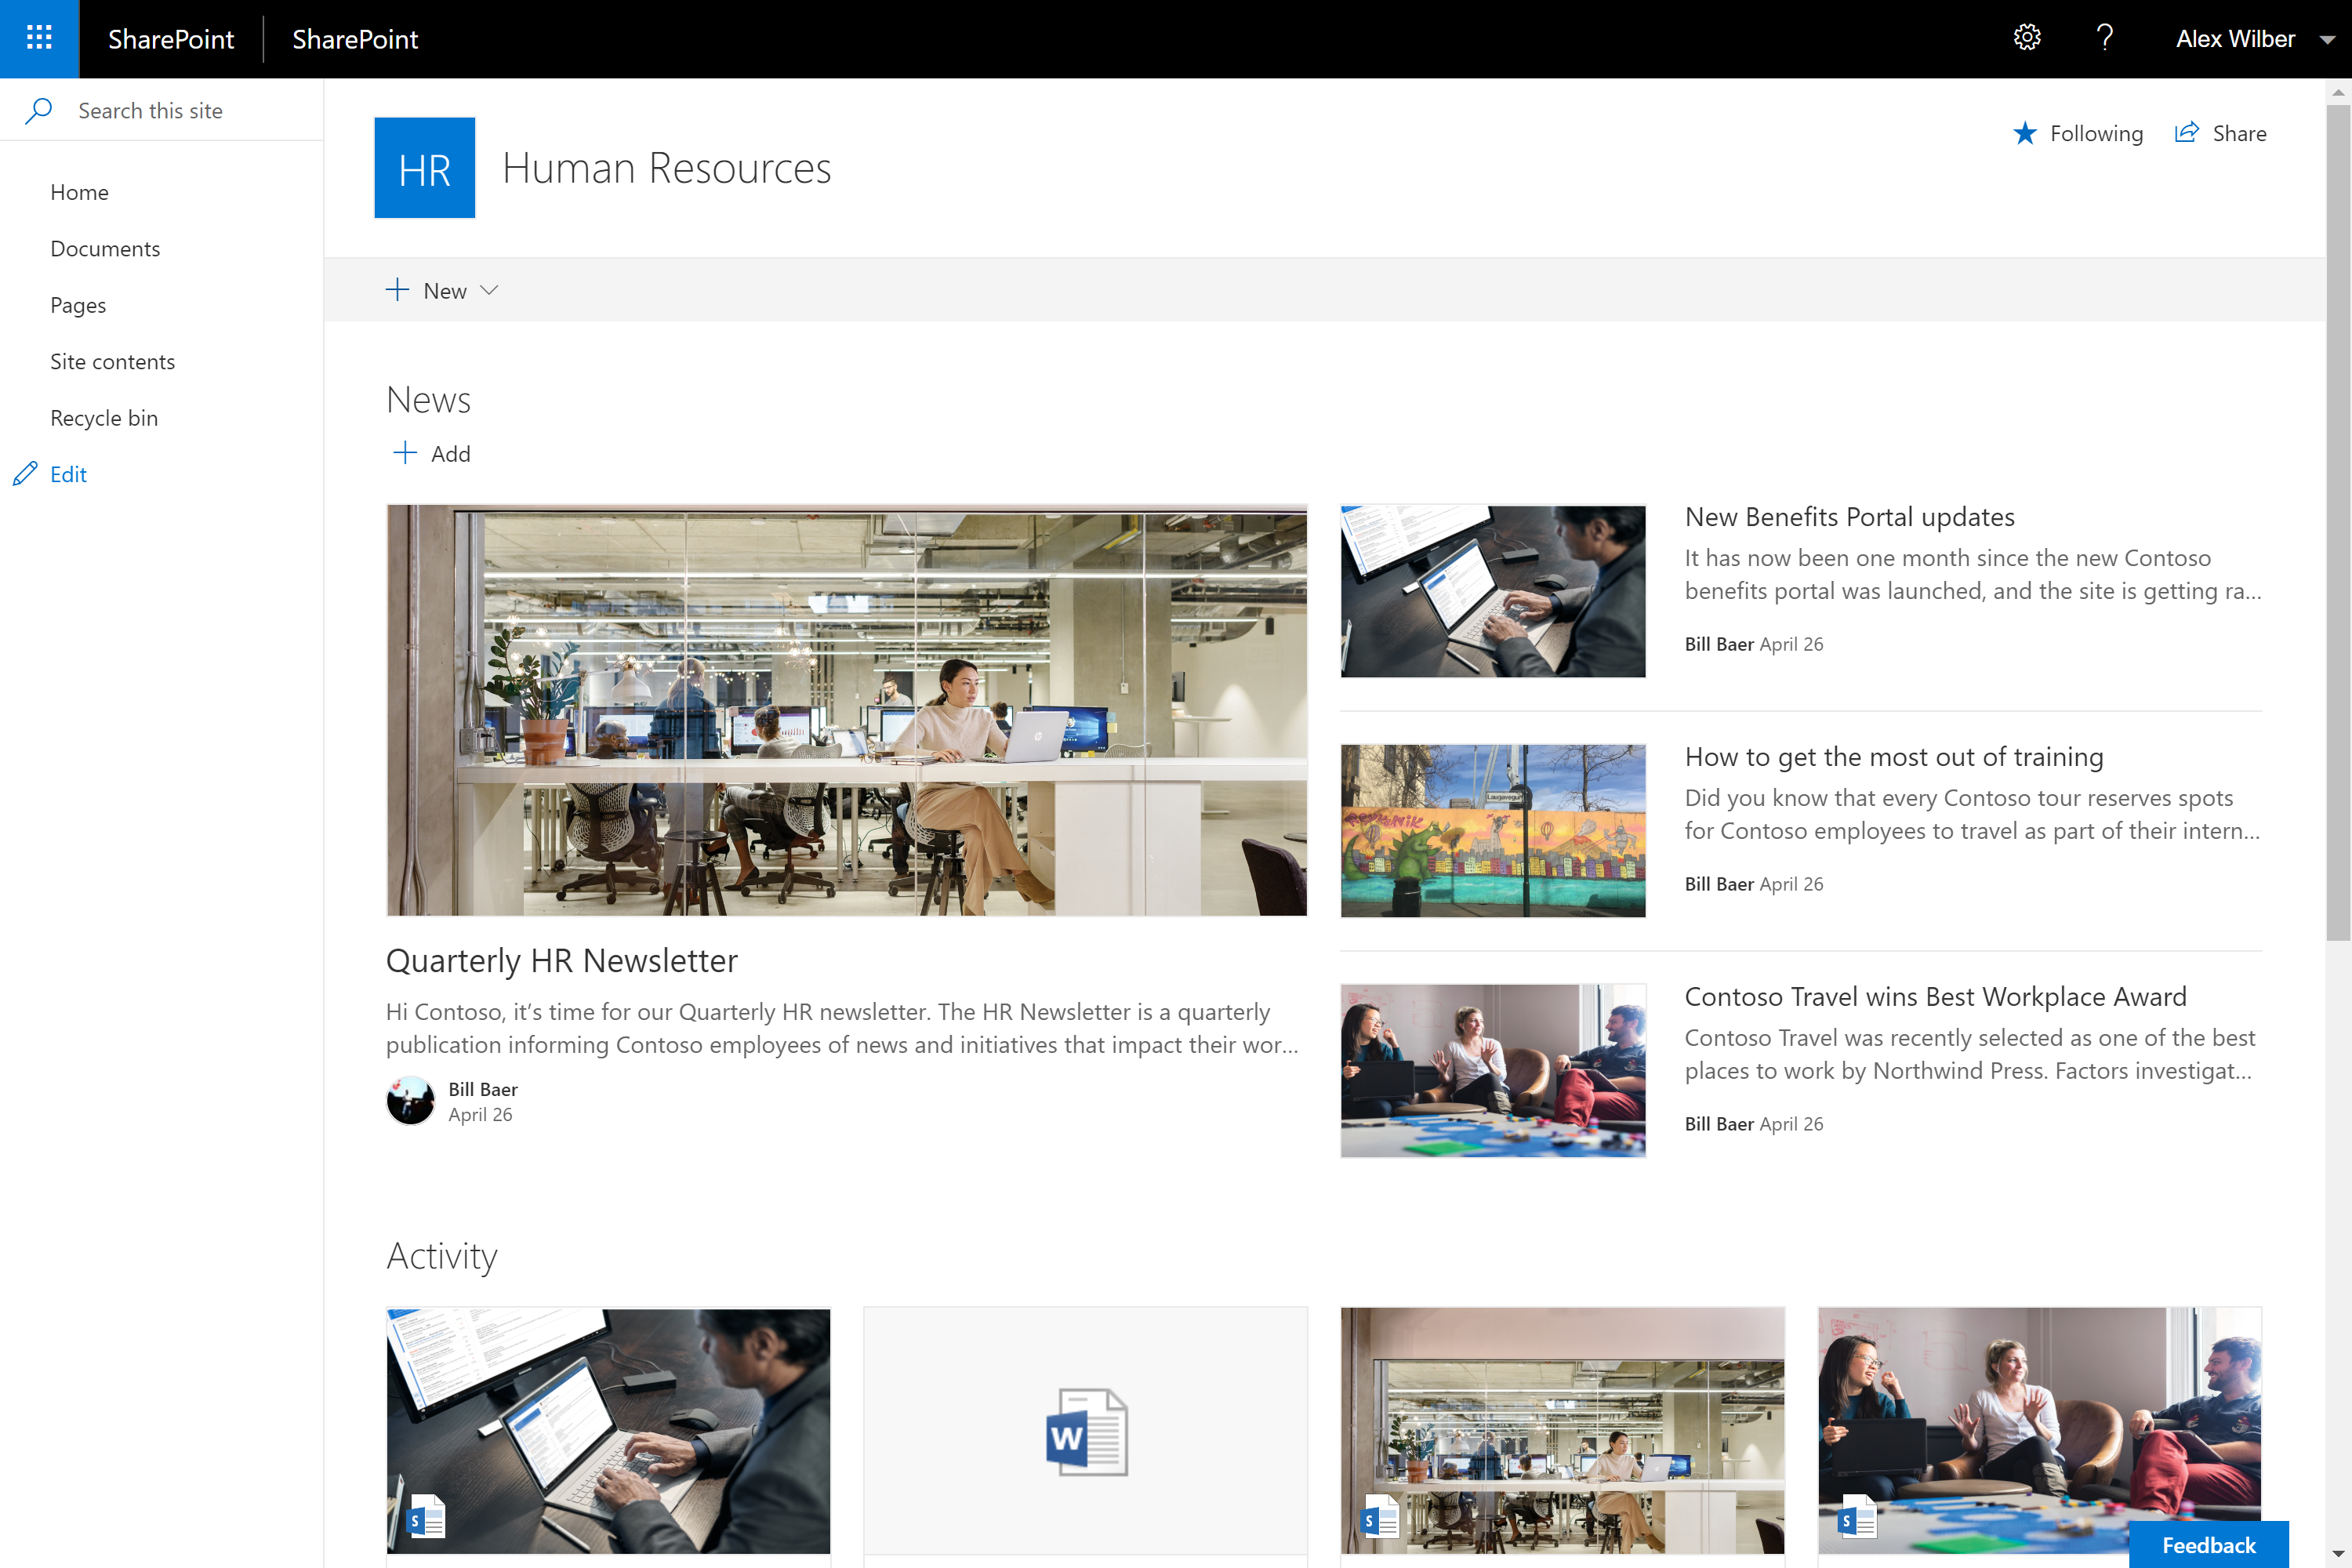 sharepoint server 2019 preview download